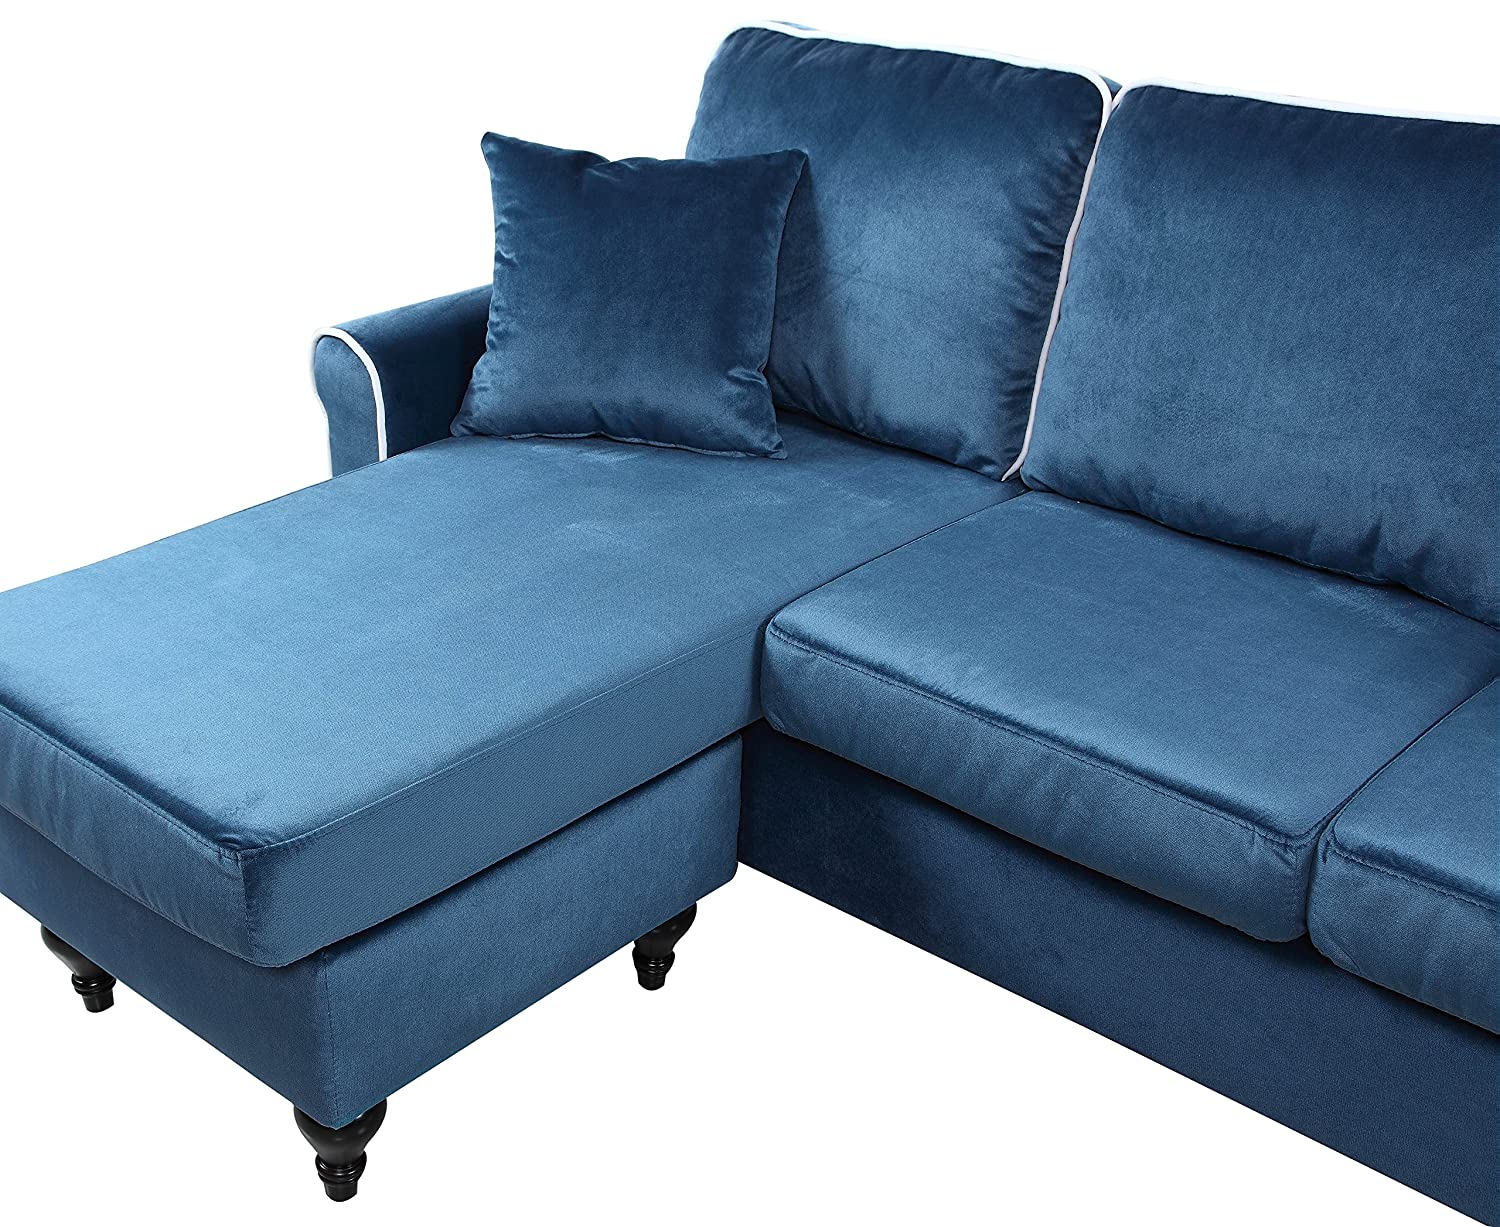 classic and traditional small space velvet sectional sofa with reversible chaise blue. Black Bedroom Furniture Sets. Home Design Ideas